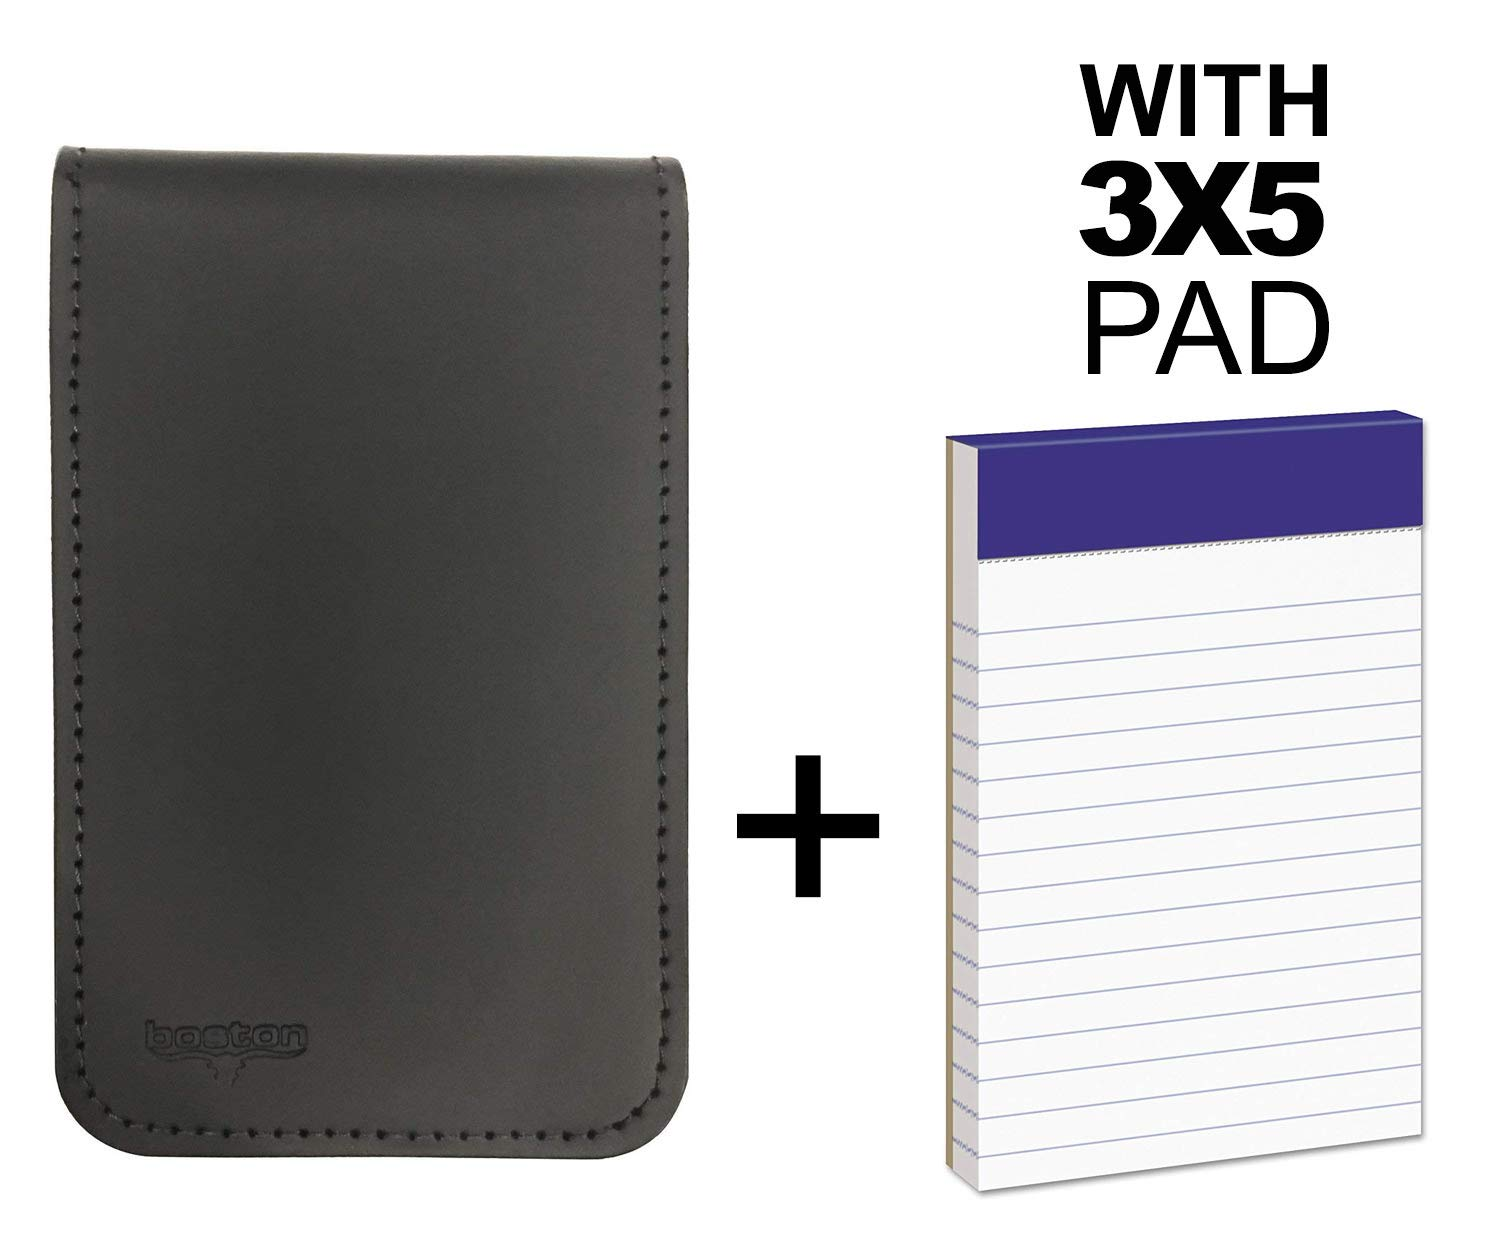 Memo Pad Cover & Holder, 3.5-Inch X 5.5-Inch Pocket Notebook, Includes One 3X5 Memo Pad